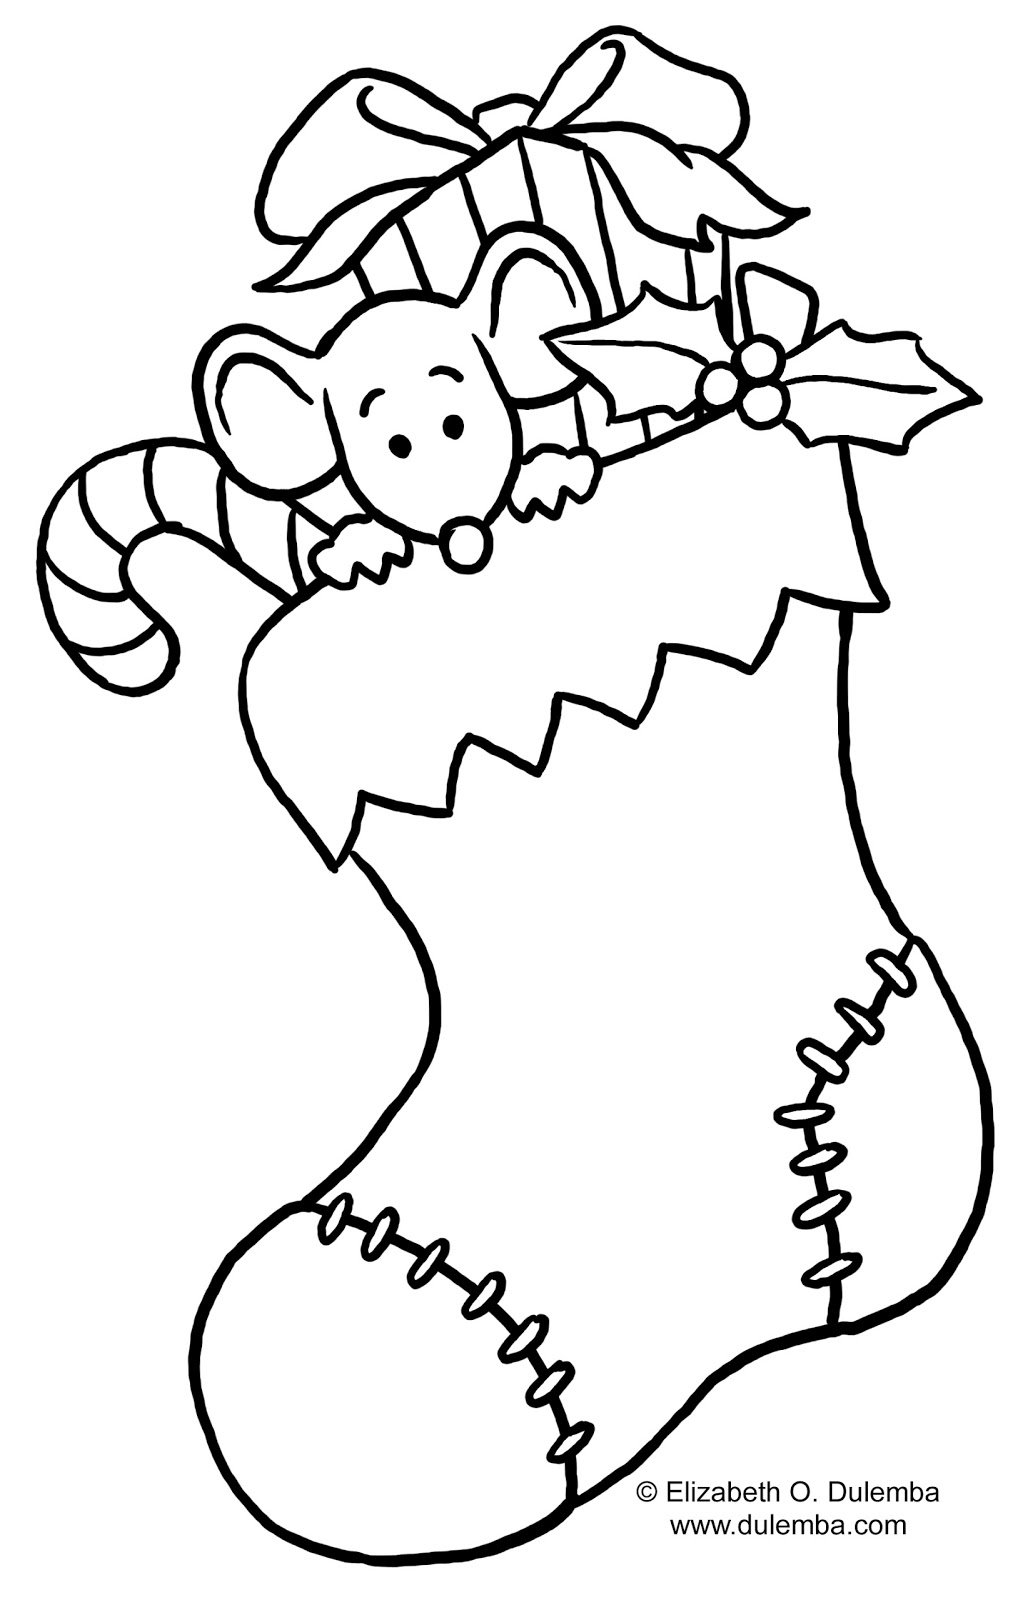 Christmas Stocking Coloring Page - Free Christmas Recipes ... | 1600x1028